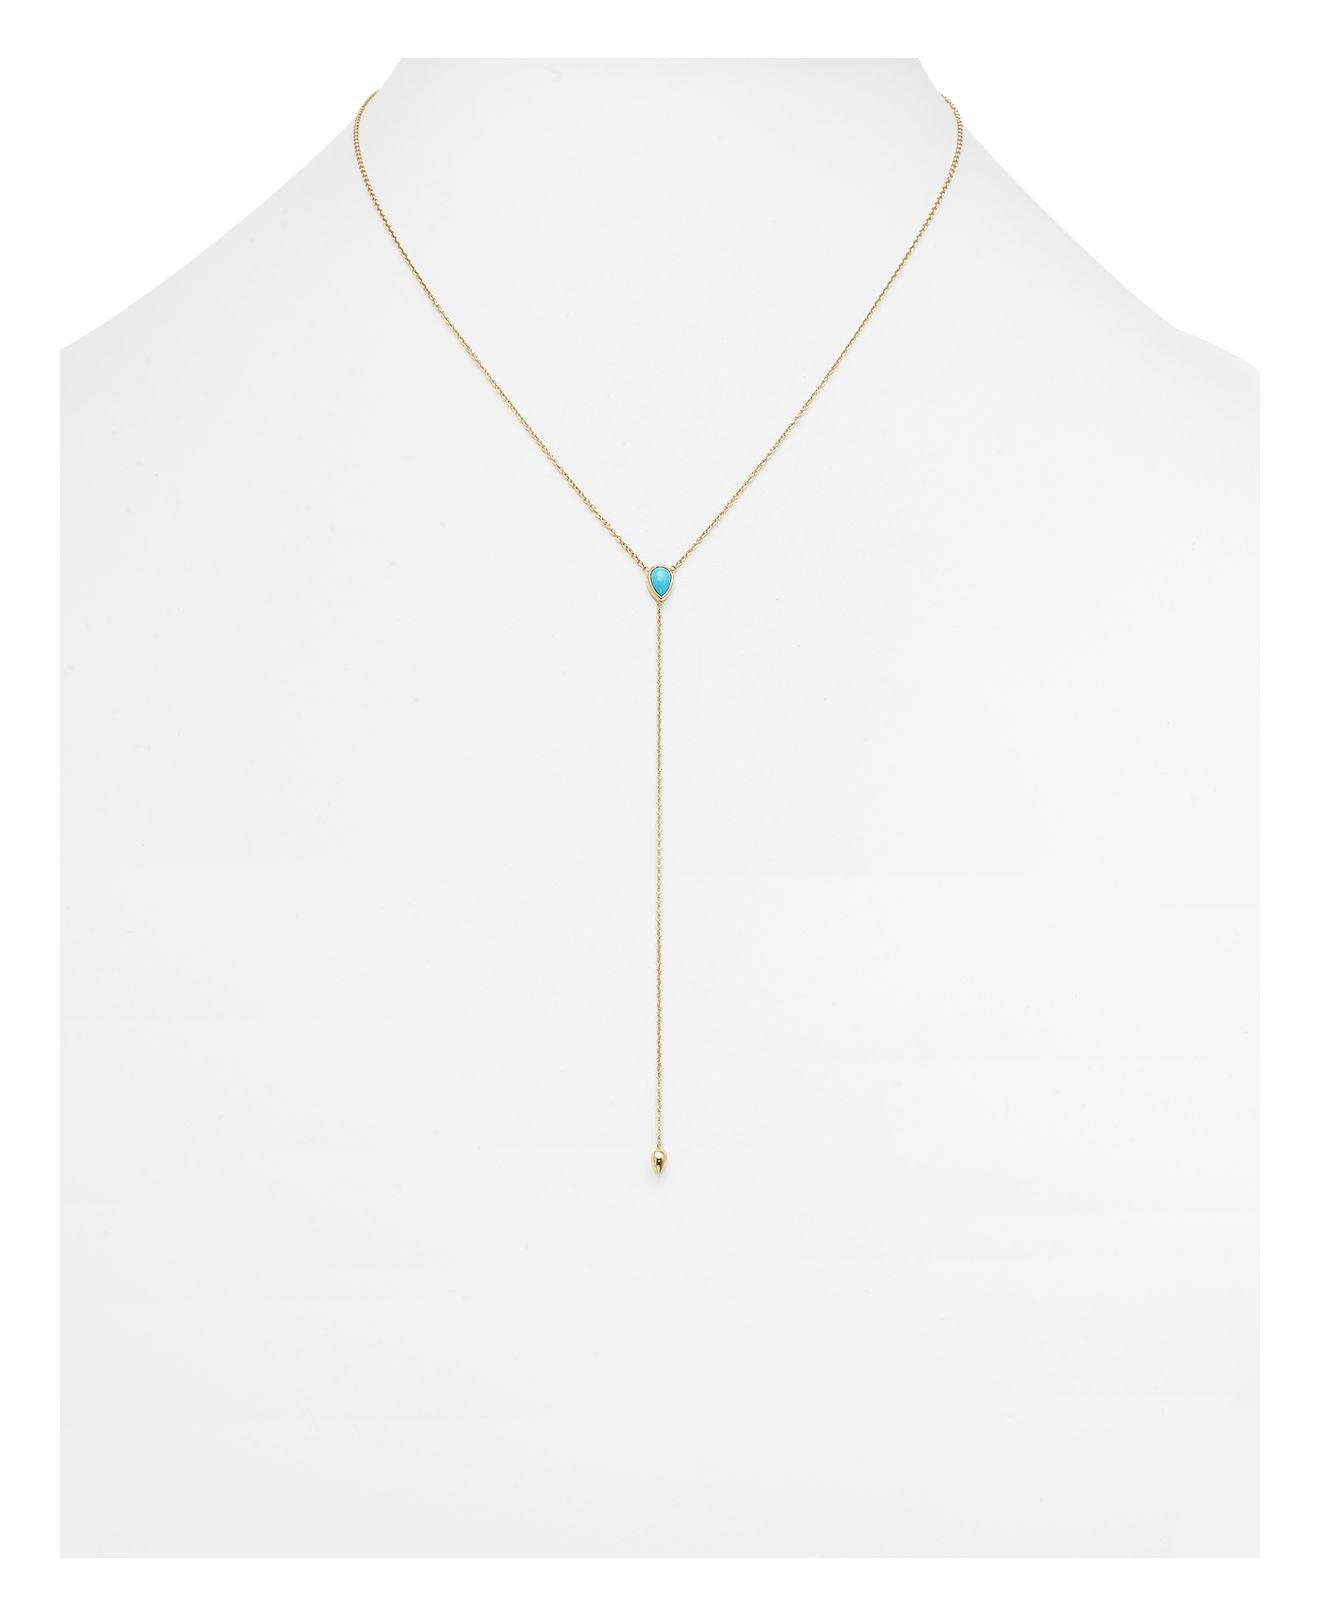 Zoe Chicco Turquoise & 14k Yellow Gold Lariat Necklace in Blue/Gold (Metallic)